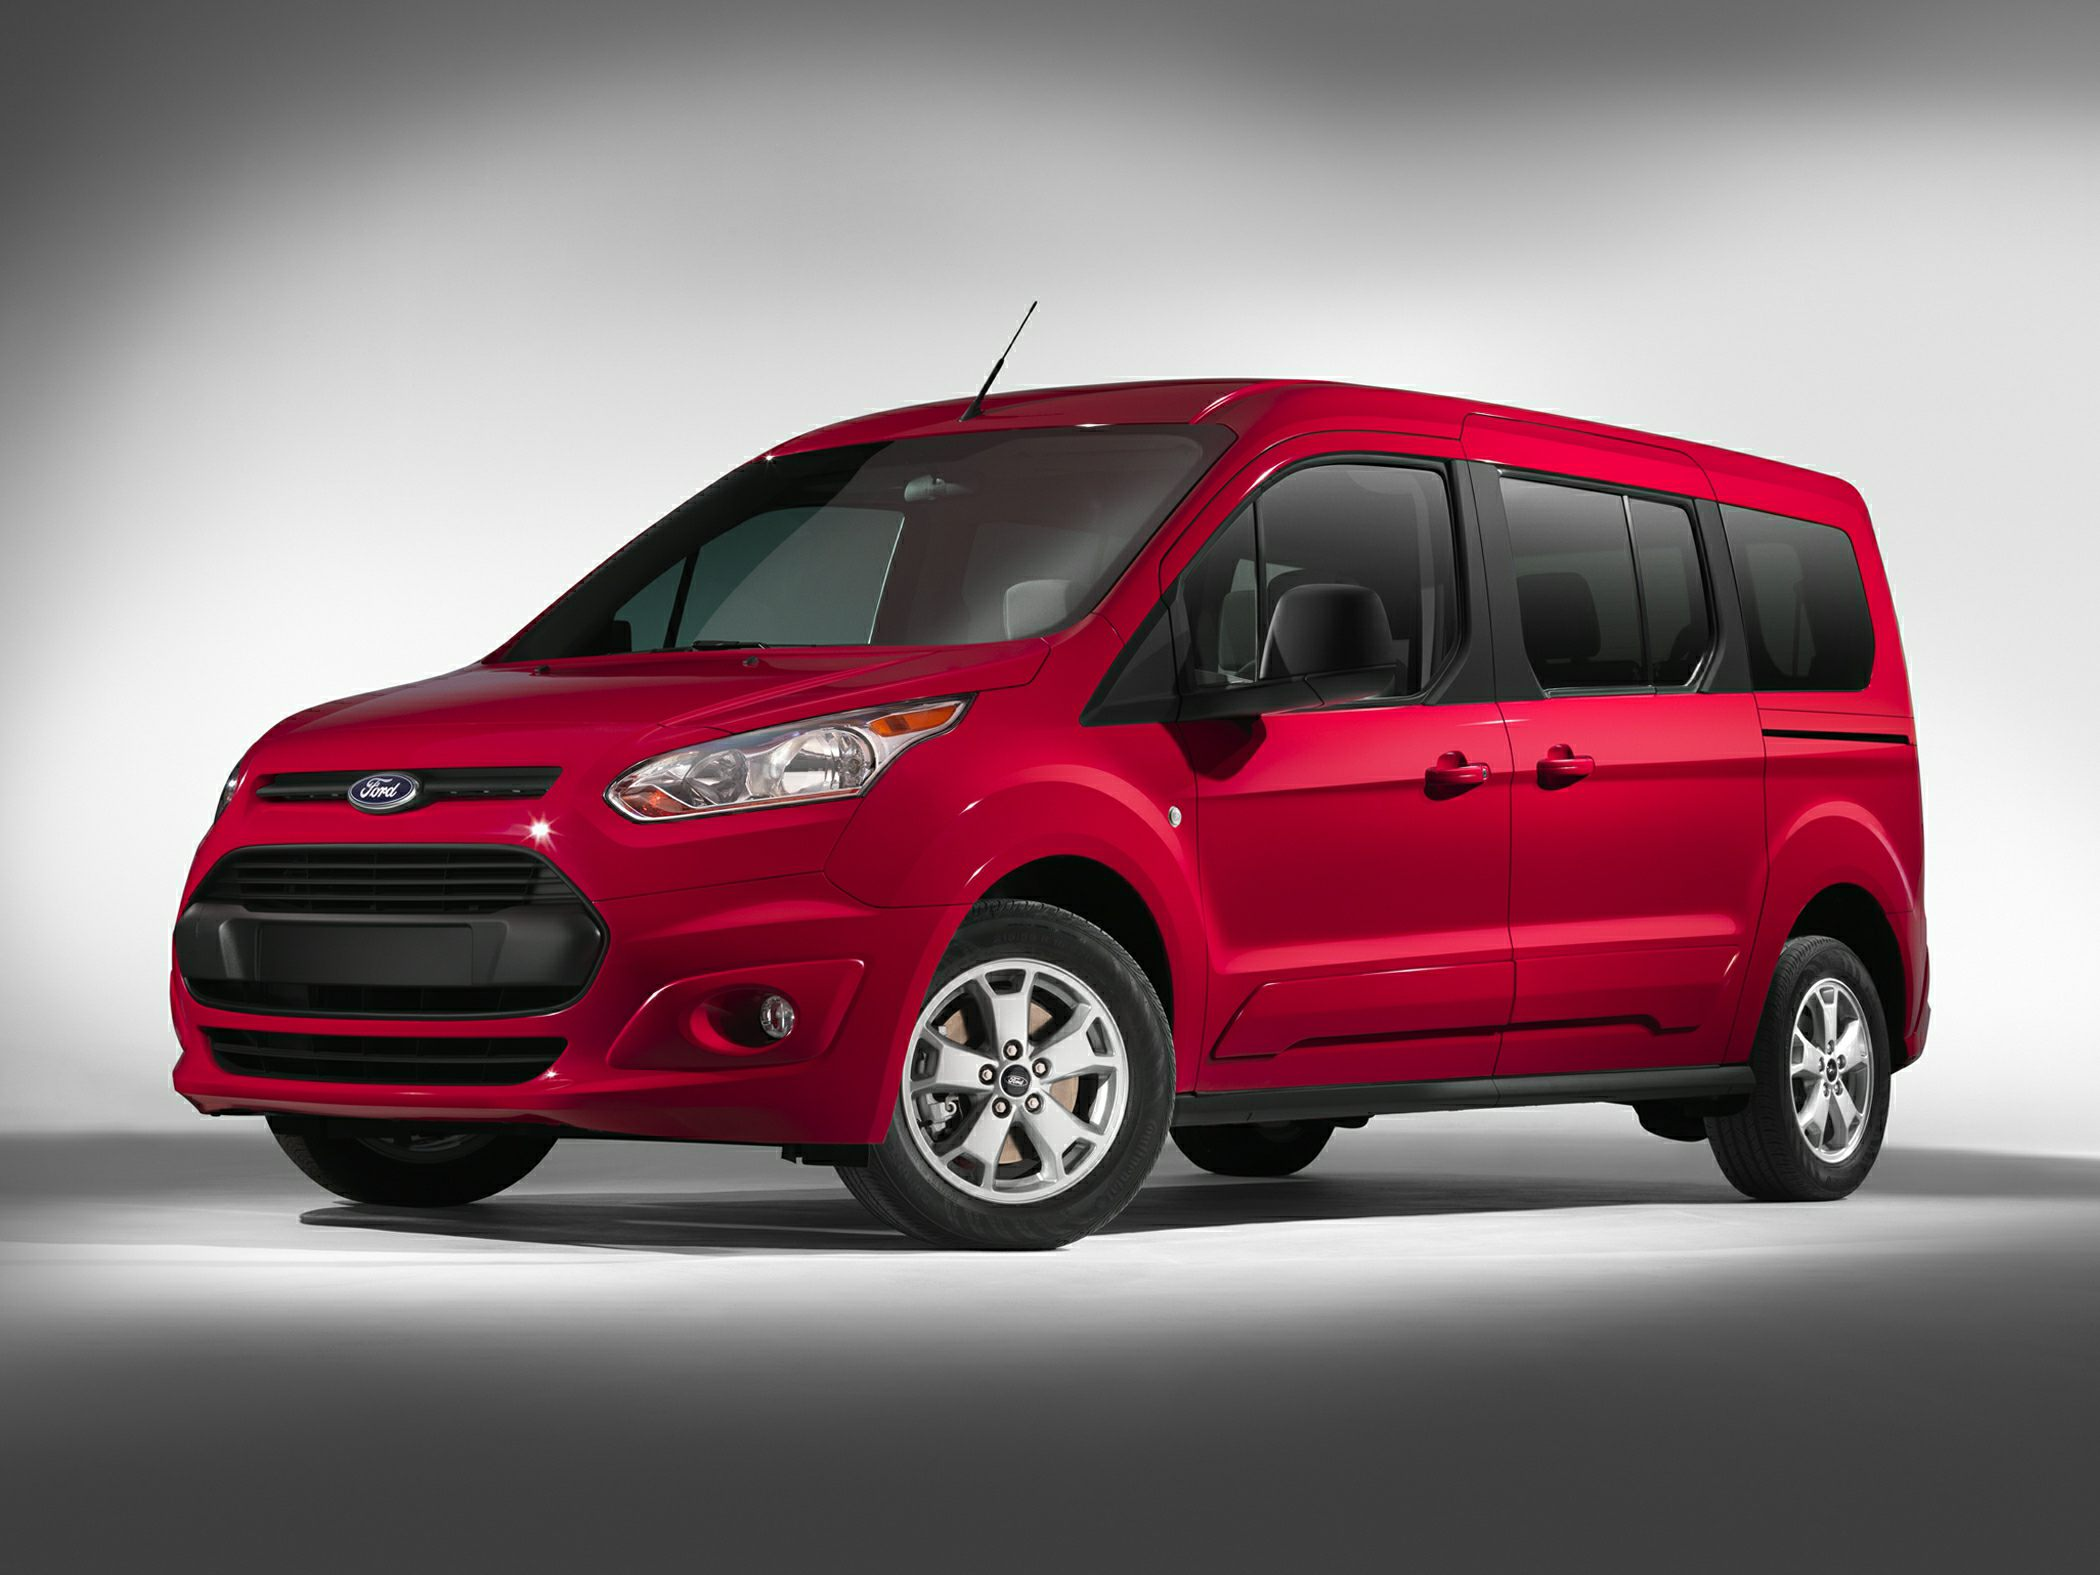 2014 Ford Transit Connect Glam